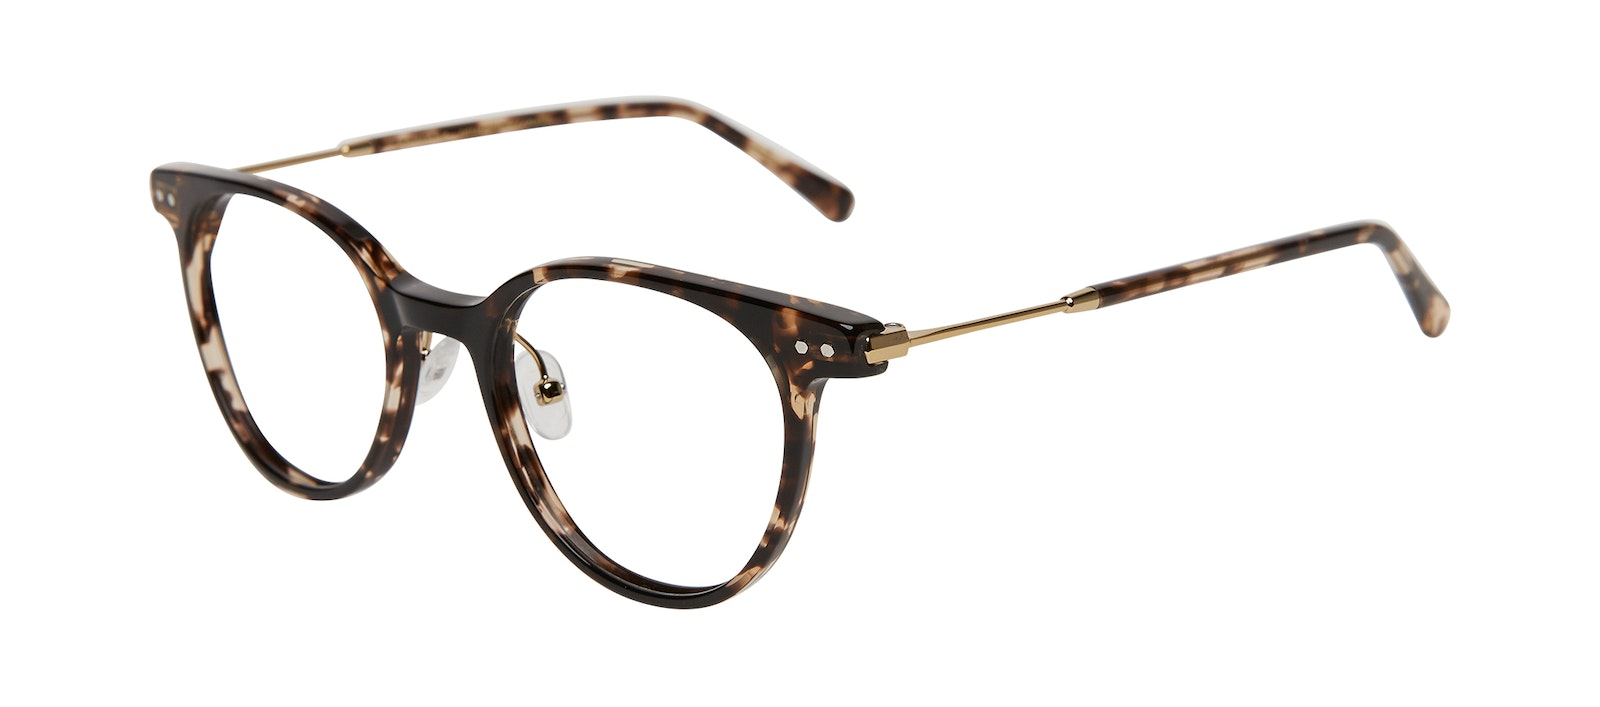 Affordable Fashion Glasses Round Eyeglasses Women Lightheart Leopard Tilt